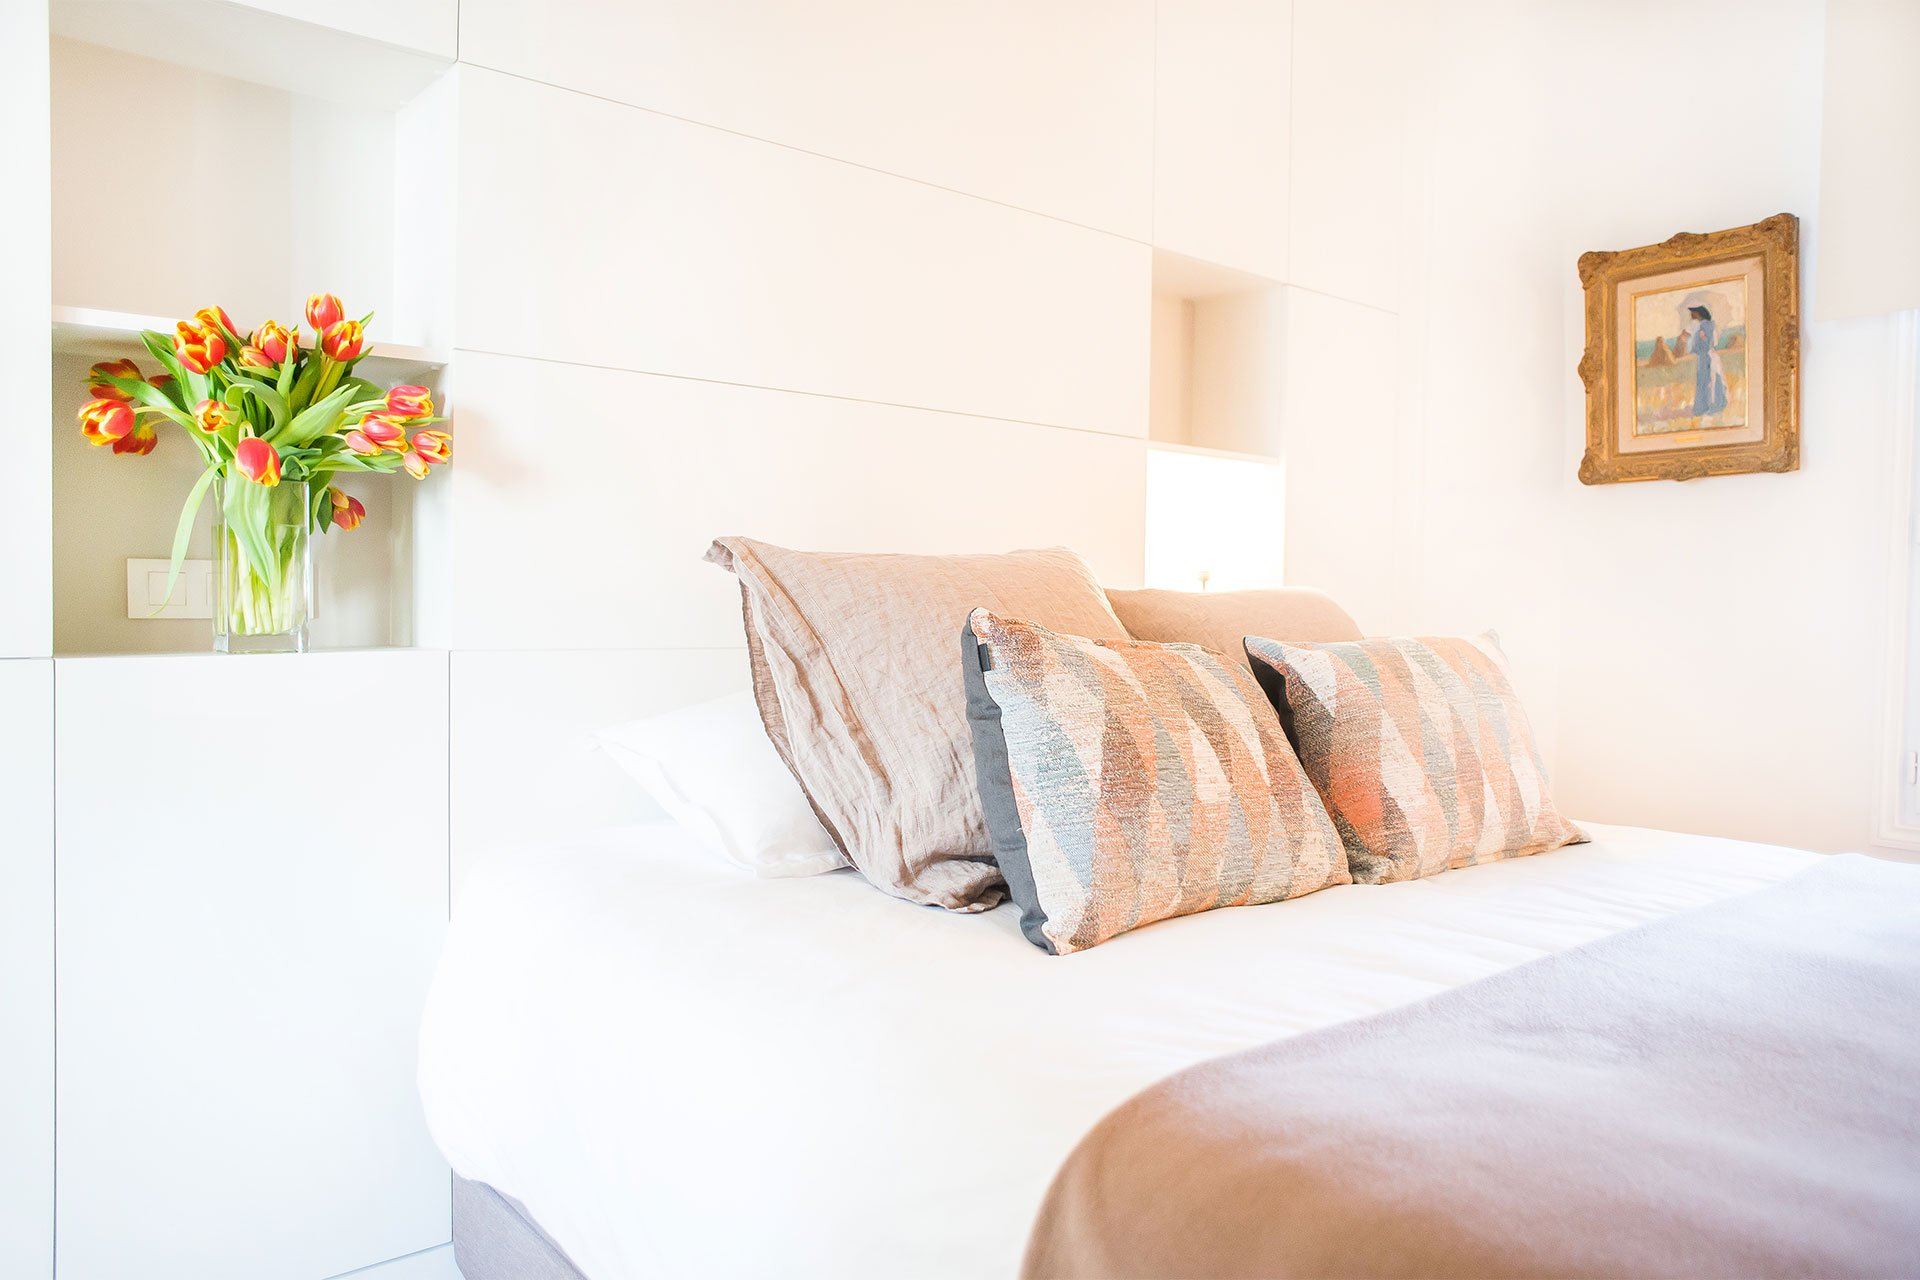 Modern bedroom with clever built-in shelves next to the bed at the Saint-Bris rental